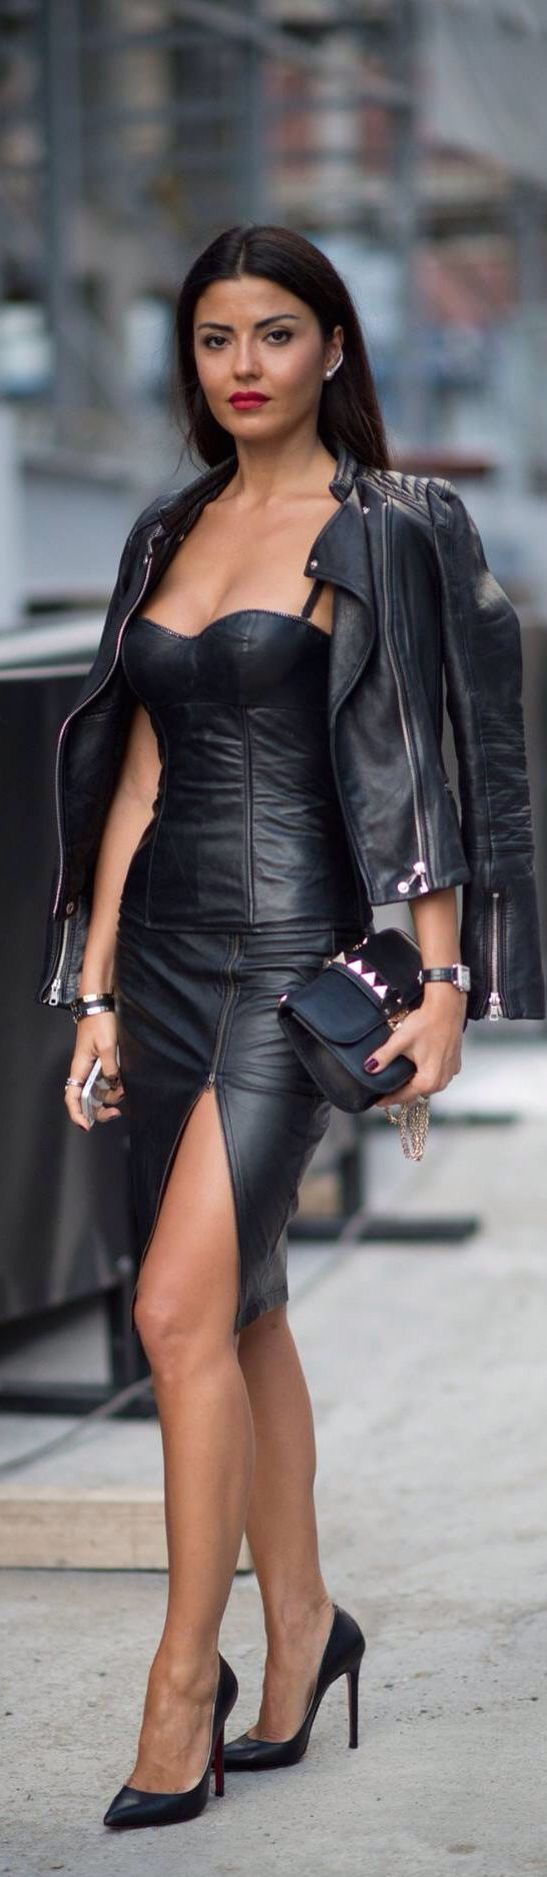 17 Best images about Trends - Leather Skirts on Pinterest ...